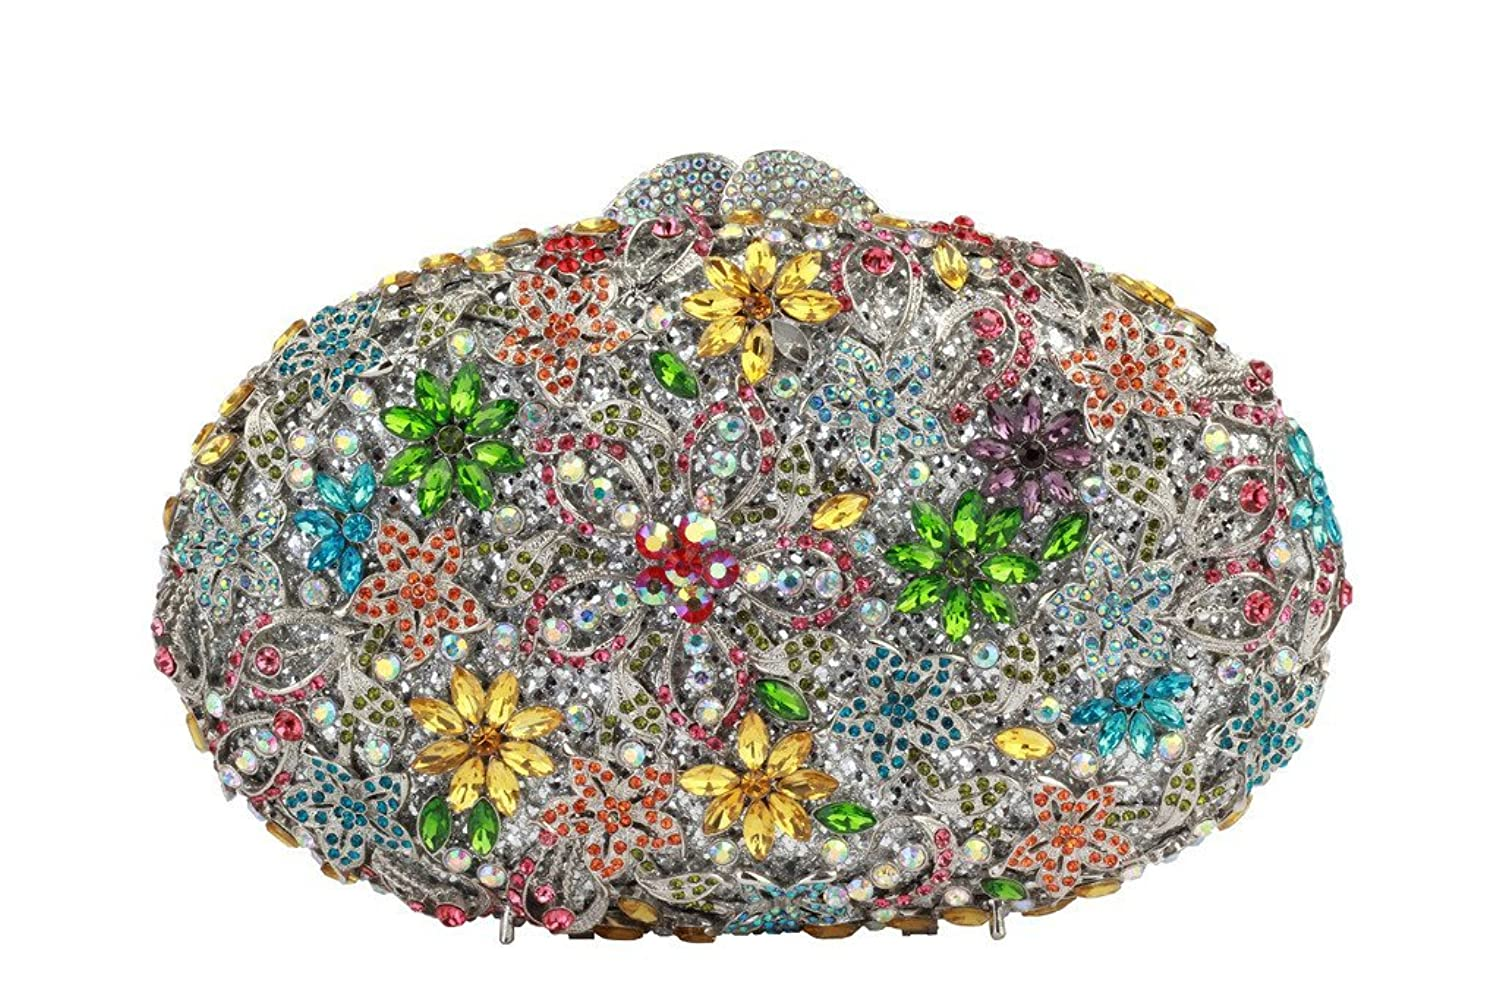 Yilongsheng Women's Oval Clutch Bags with Bright-colored Floral Crystal Rhinestones(Multicolor)